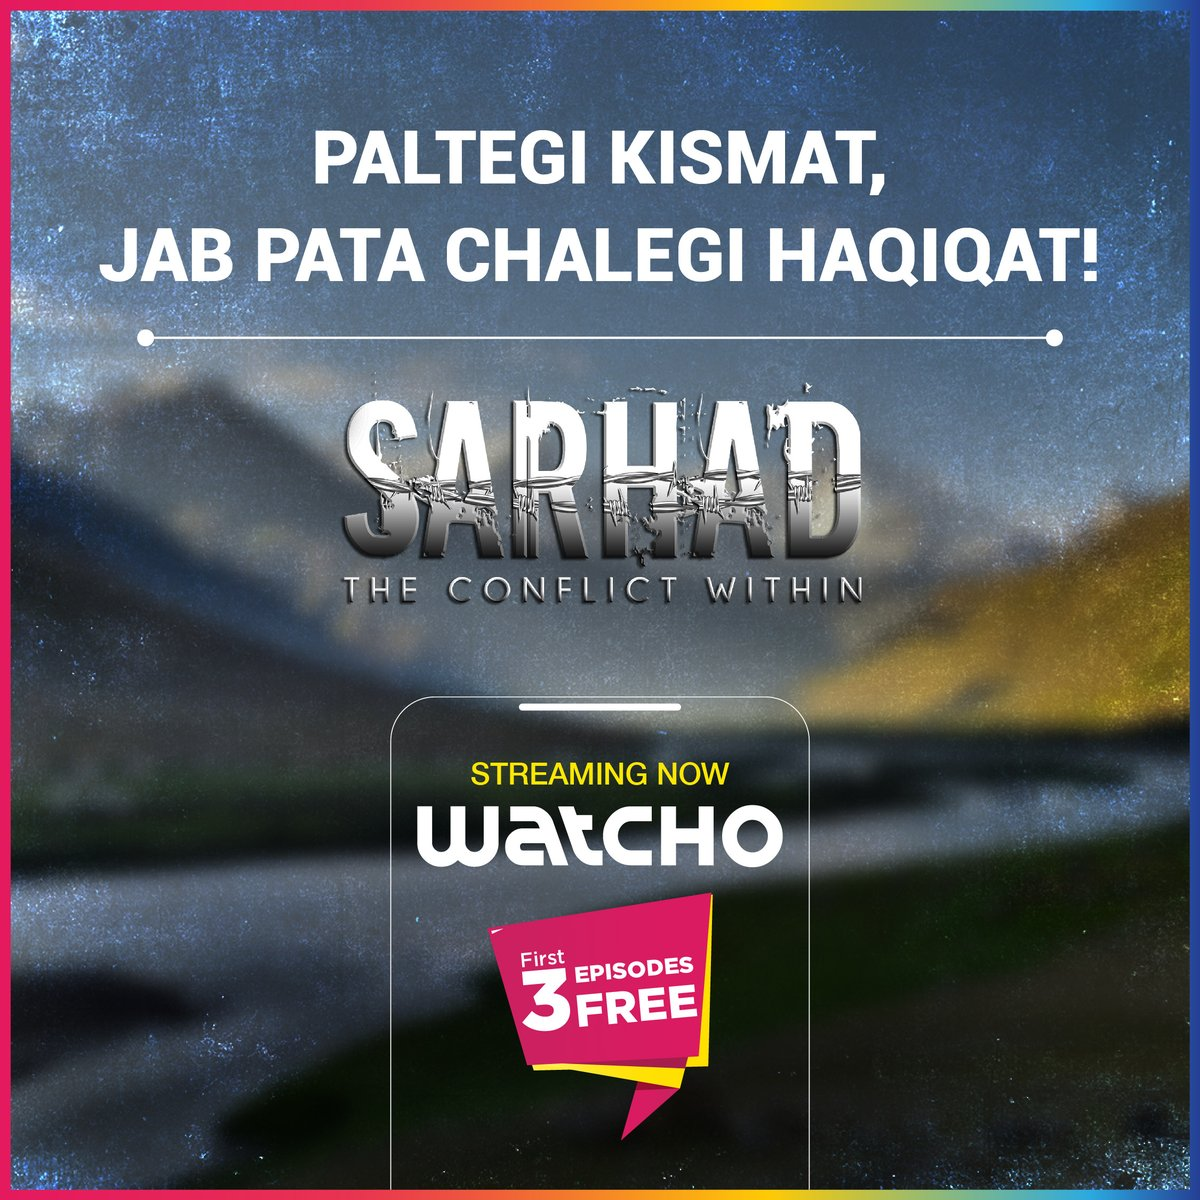 Thrill bhi hai, plot twists bhi! Sarhad - The Conflict Within - streaming exclusively on Watcho.  #LetsWatcho #Watcho #MustWatch #HappyRepublicDay #Nationalism  #love #patriots #national #proudindian   @DishTV_India  @officiald2h  @PerceptEMC